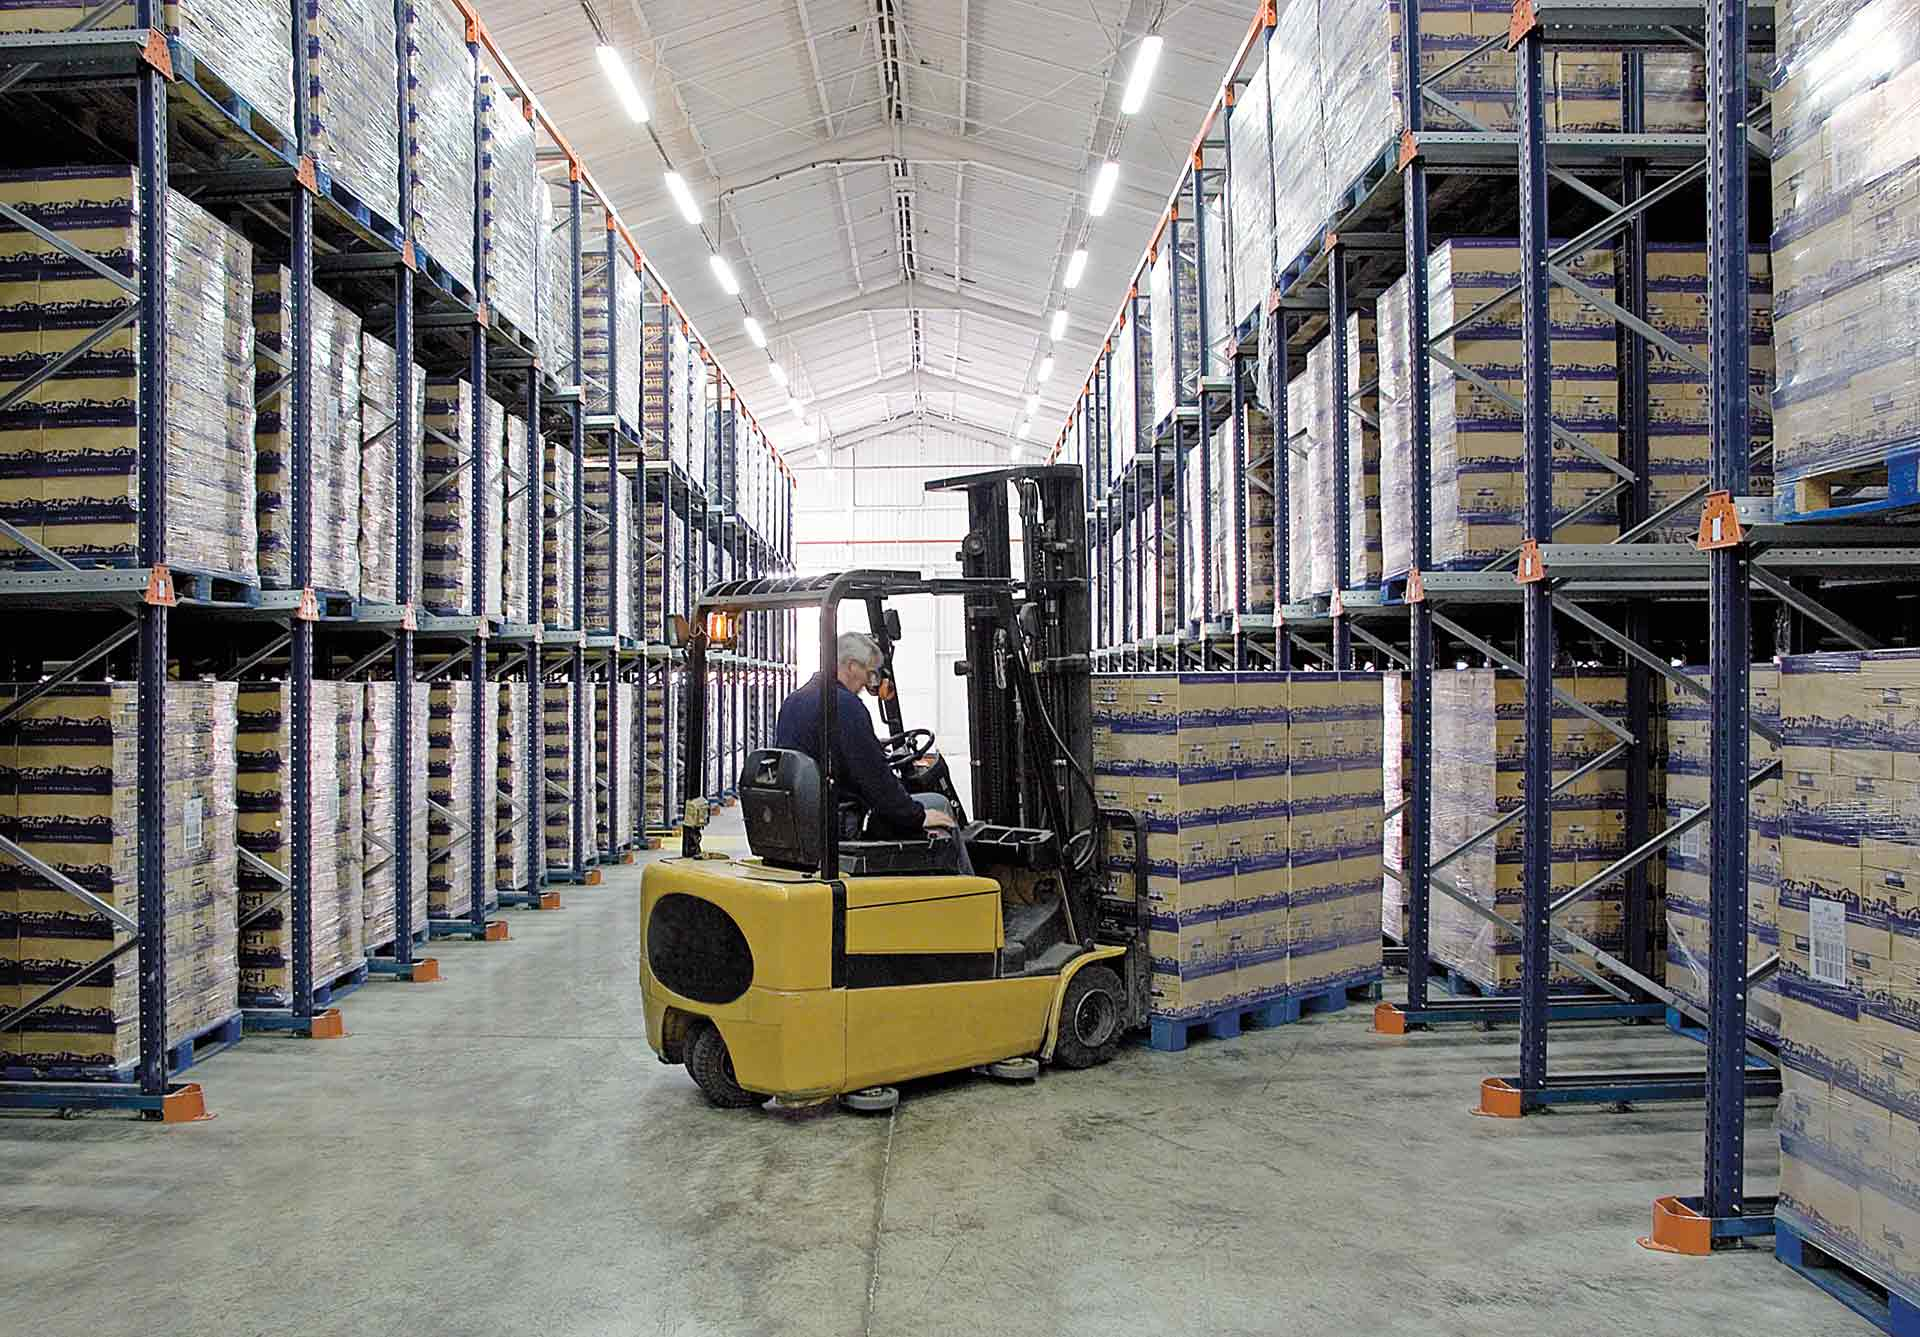 Operator picking up goods with a forklift as an example of a man-to-goods order fulfillment system